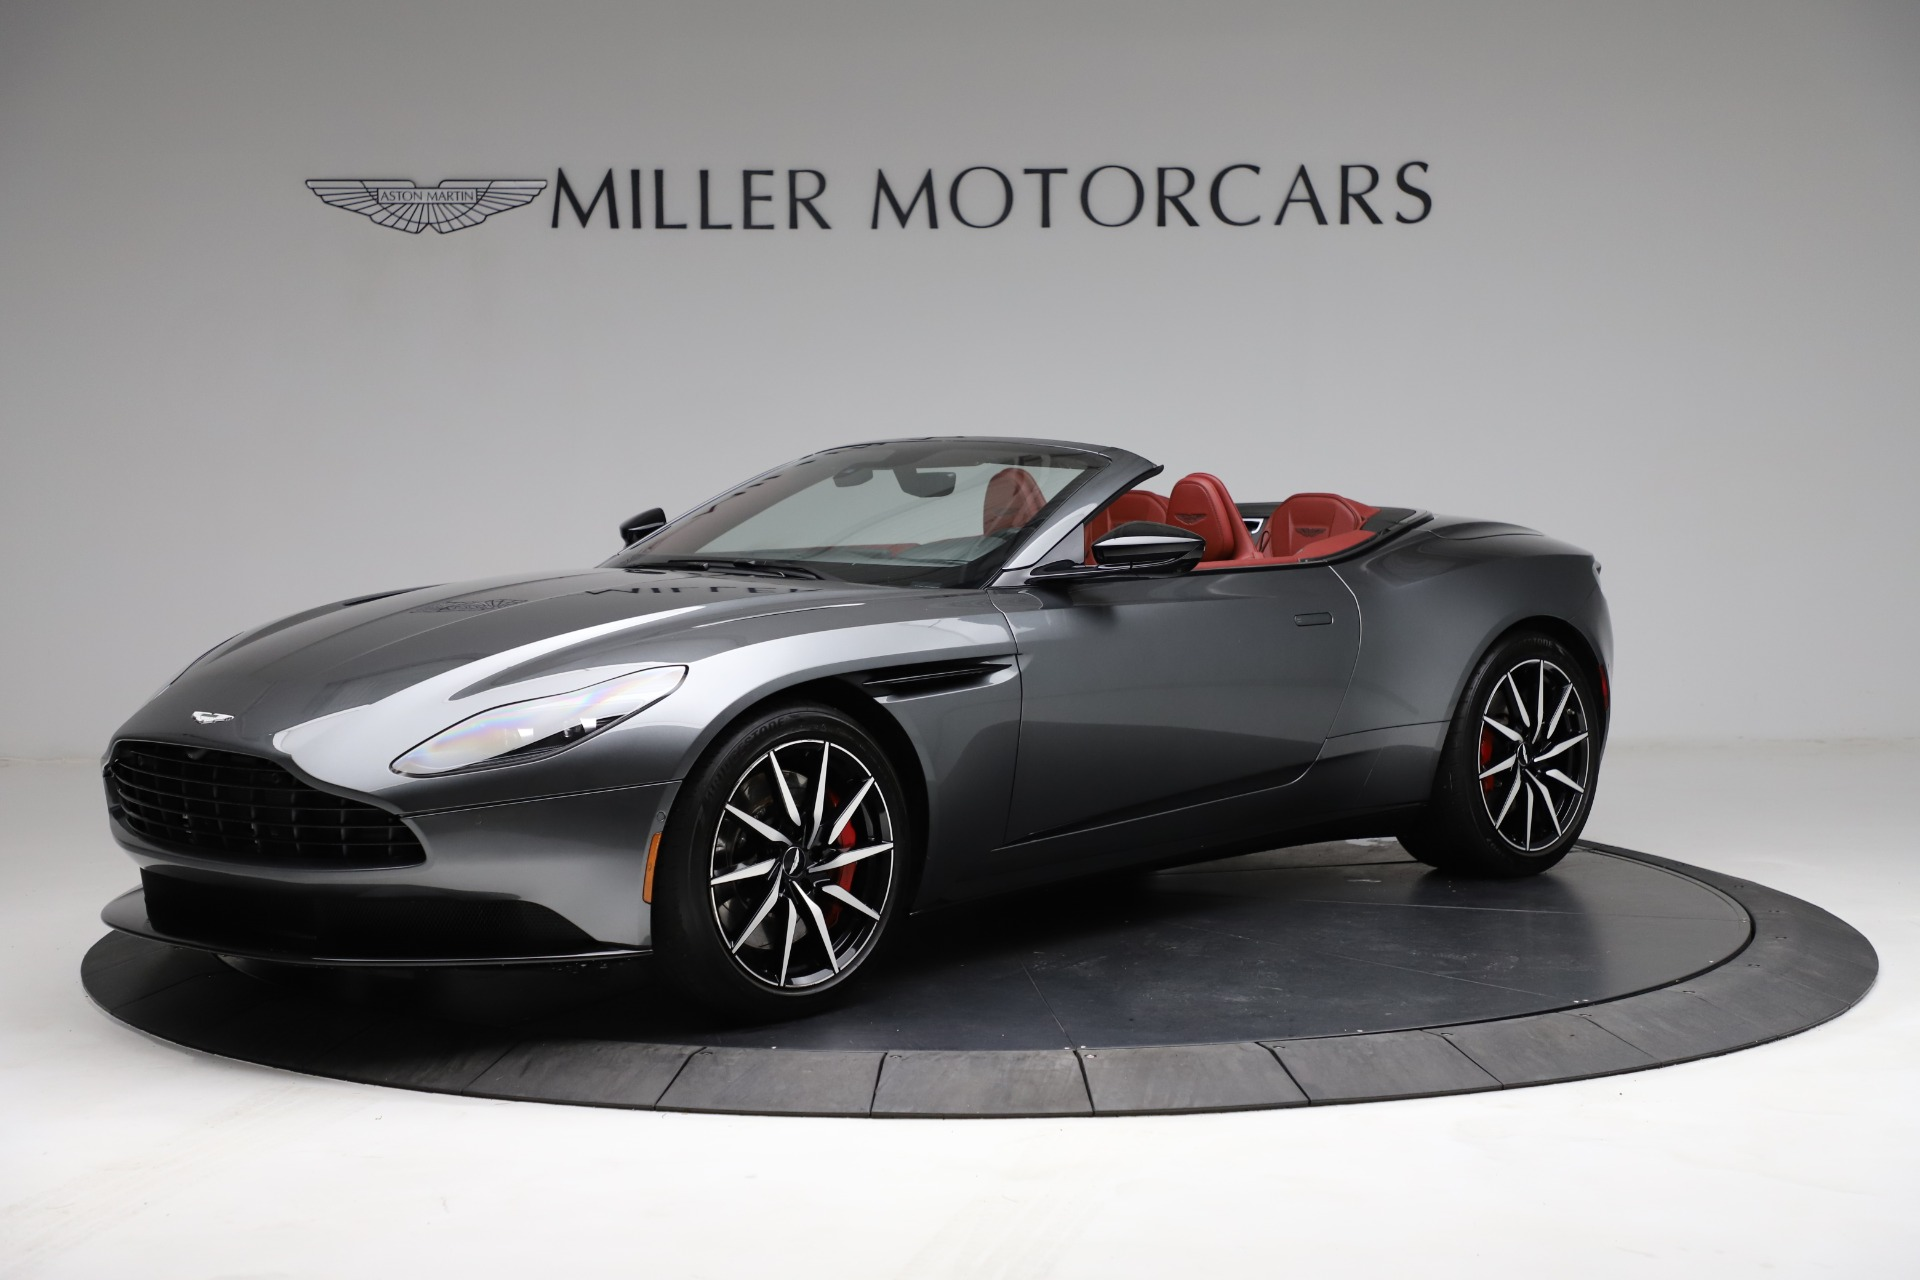 Used 2019 Aston Martin DB11 Volante for sale $211,990 at Maserati of Westport in Westport CT 06880 1